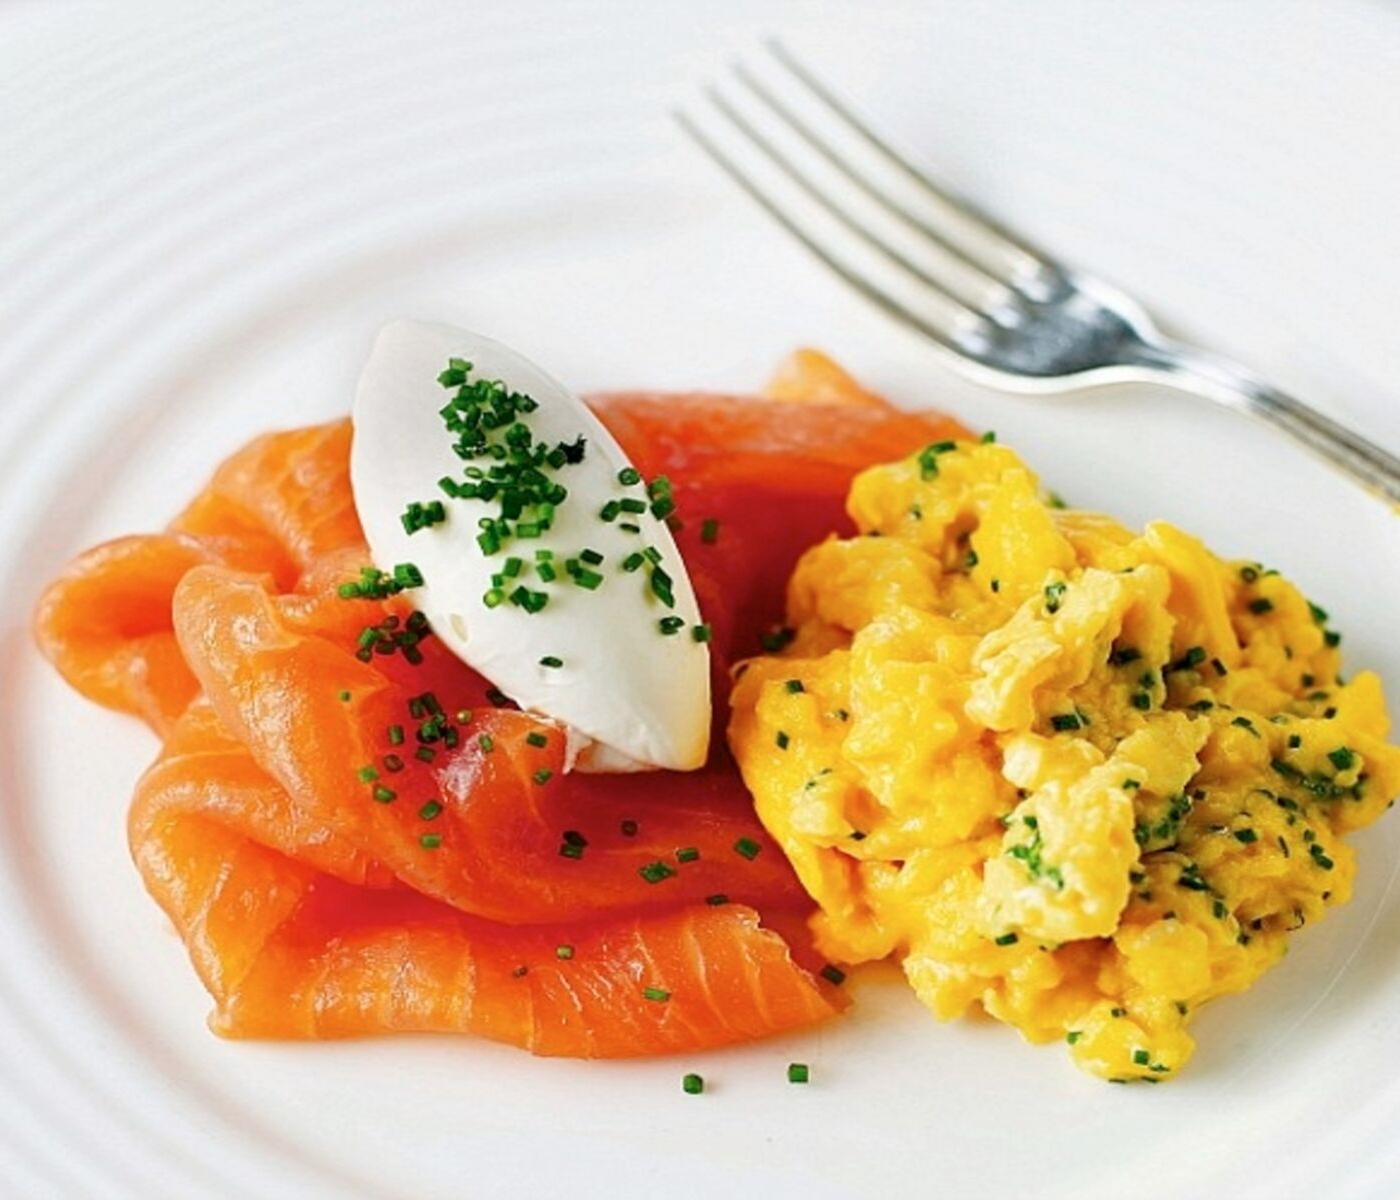 Smoked Salmon and Scrambled Eggs Bed and Breakfast Ireland